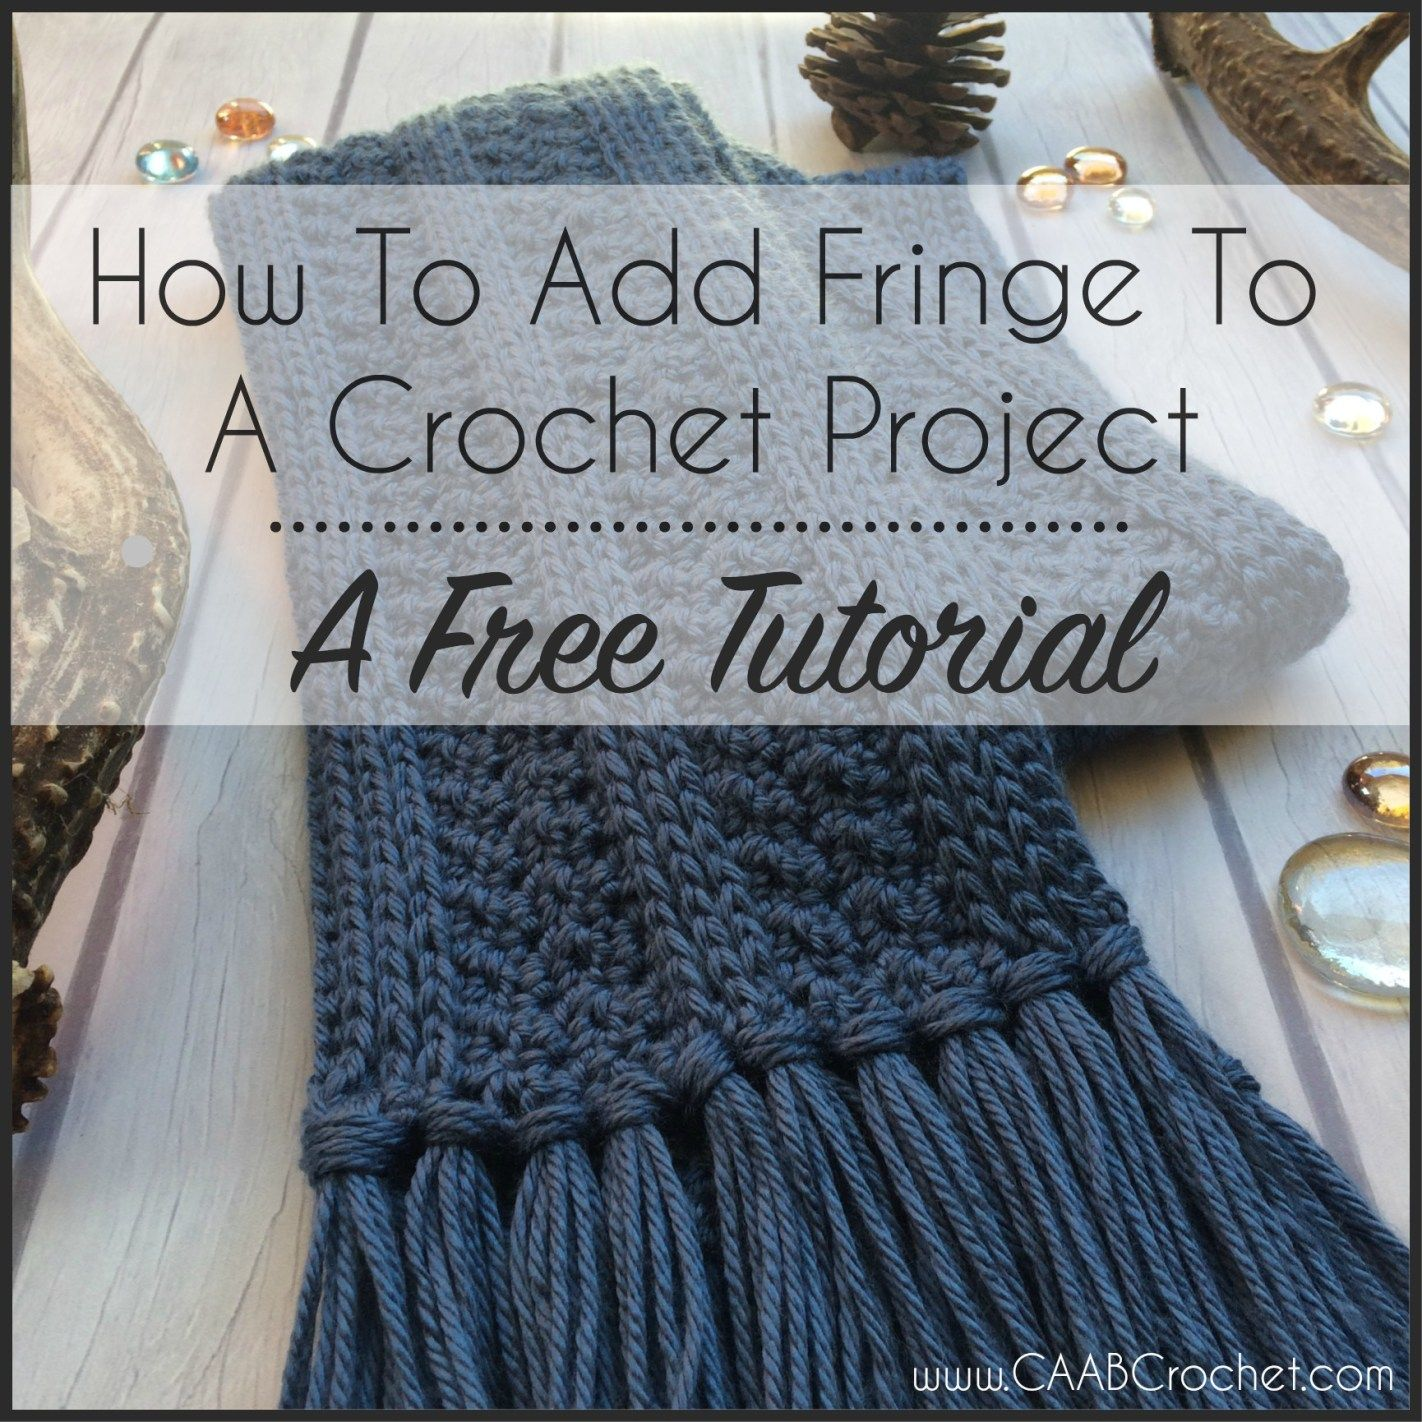 How to add fringe to a crochet project | Crochet bufanda y Ganchillo